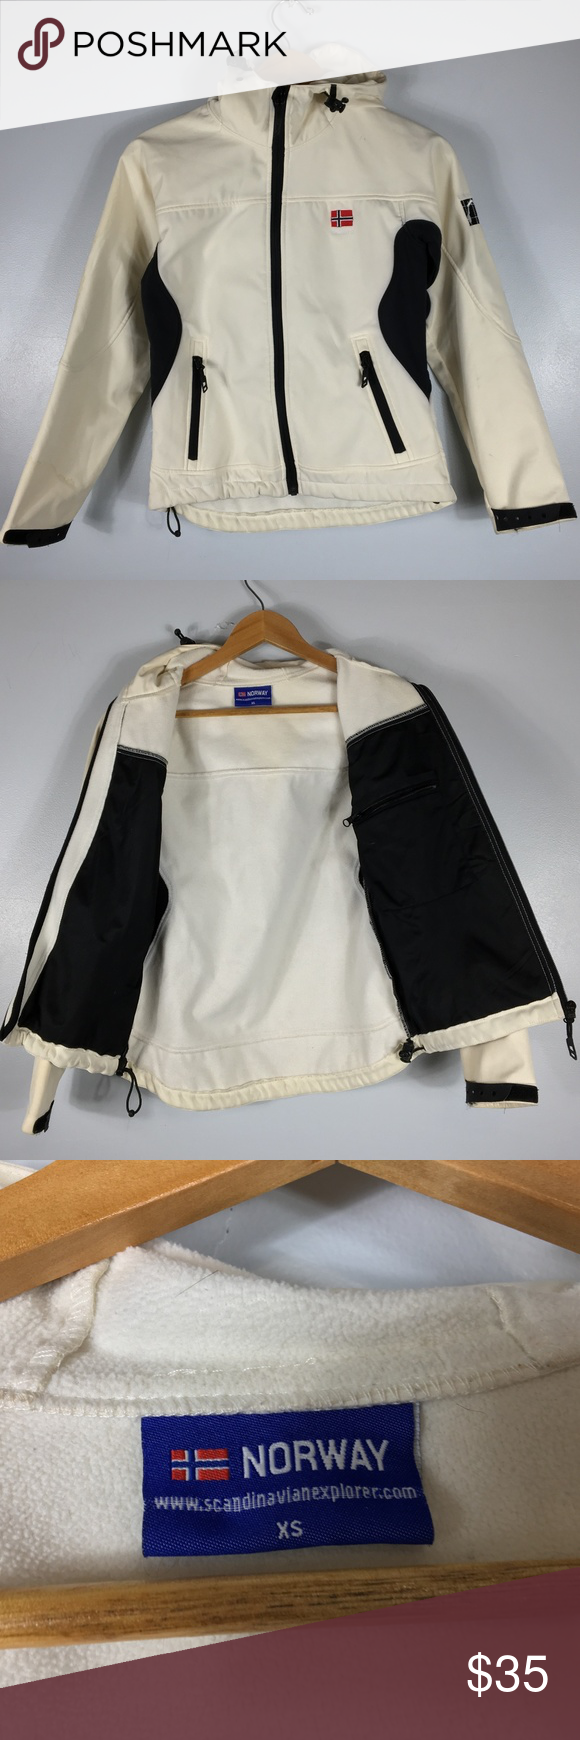 Norway Ivory Scandinavian Explorer Jacket Size Xs Jackets Clothes Design Women Shopping